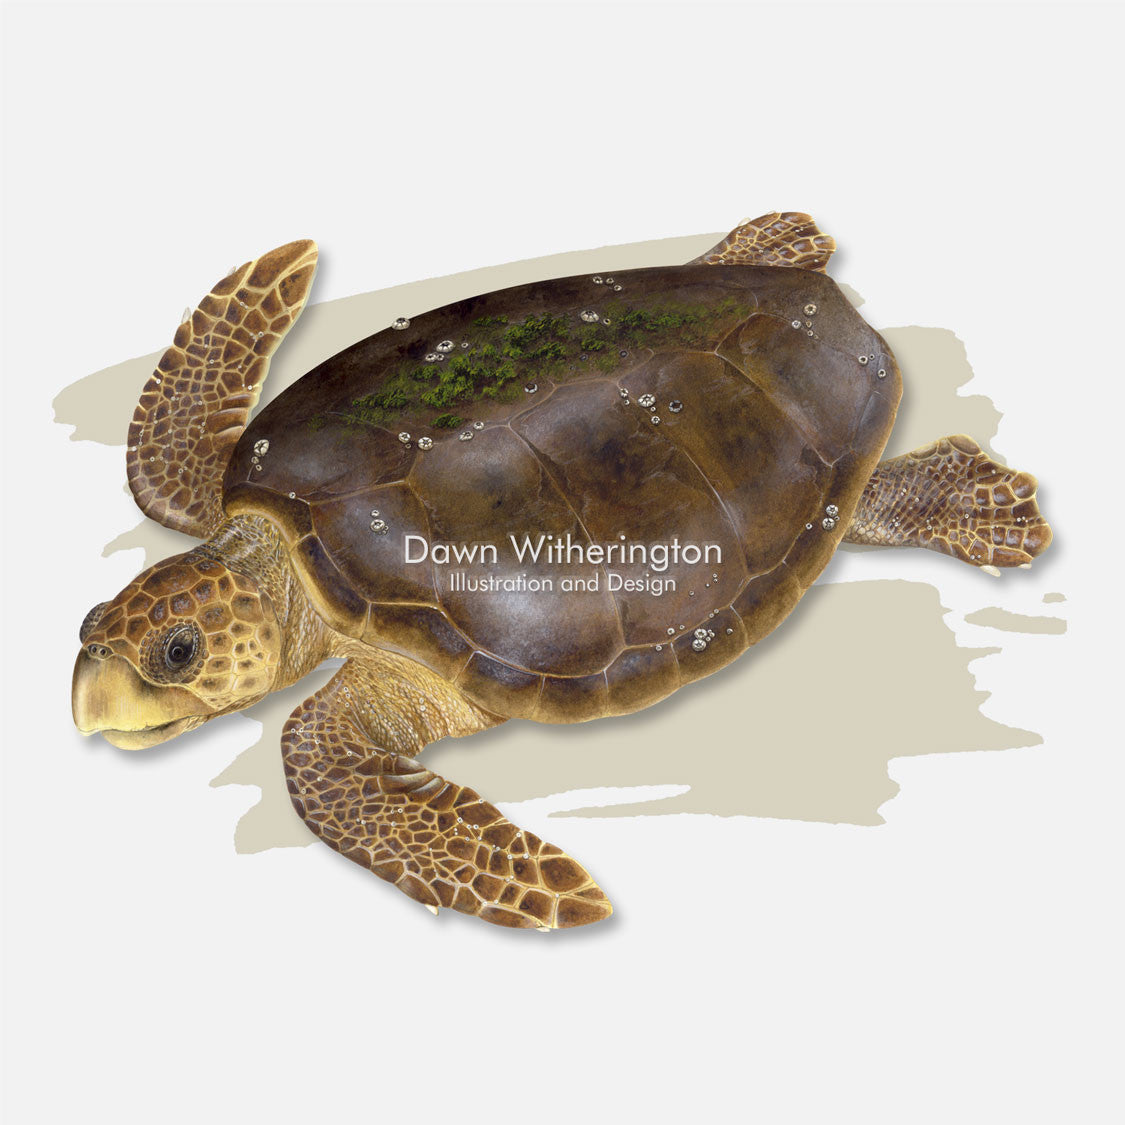 This beautiful illustration is of a loggerhead sea turtle, Caretta caretta, over a swash graphic.